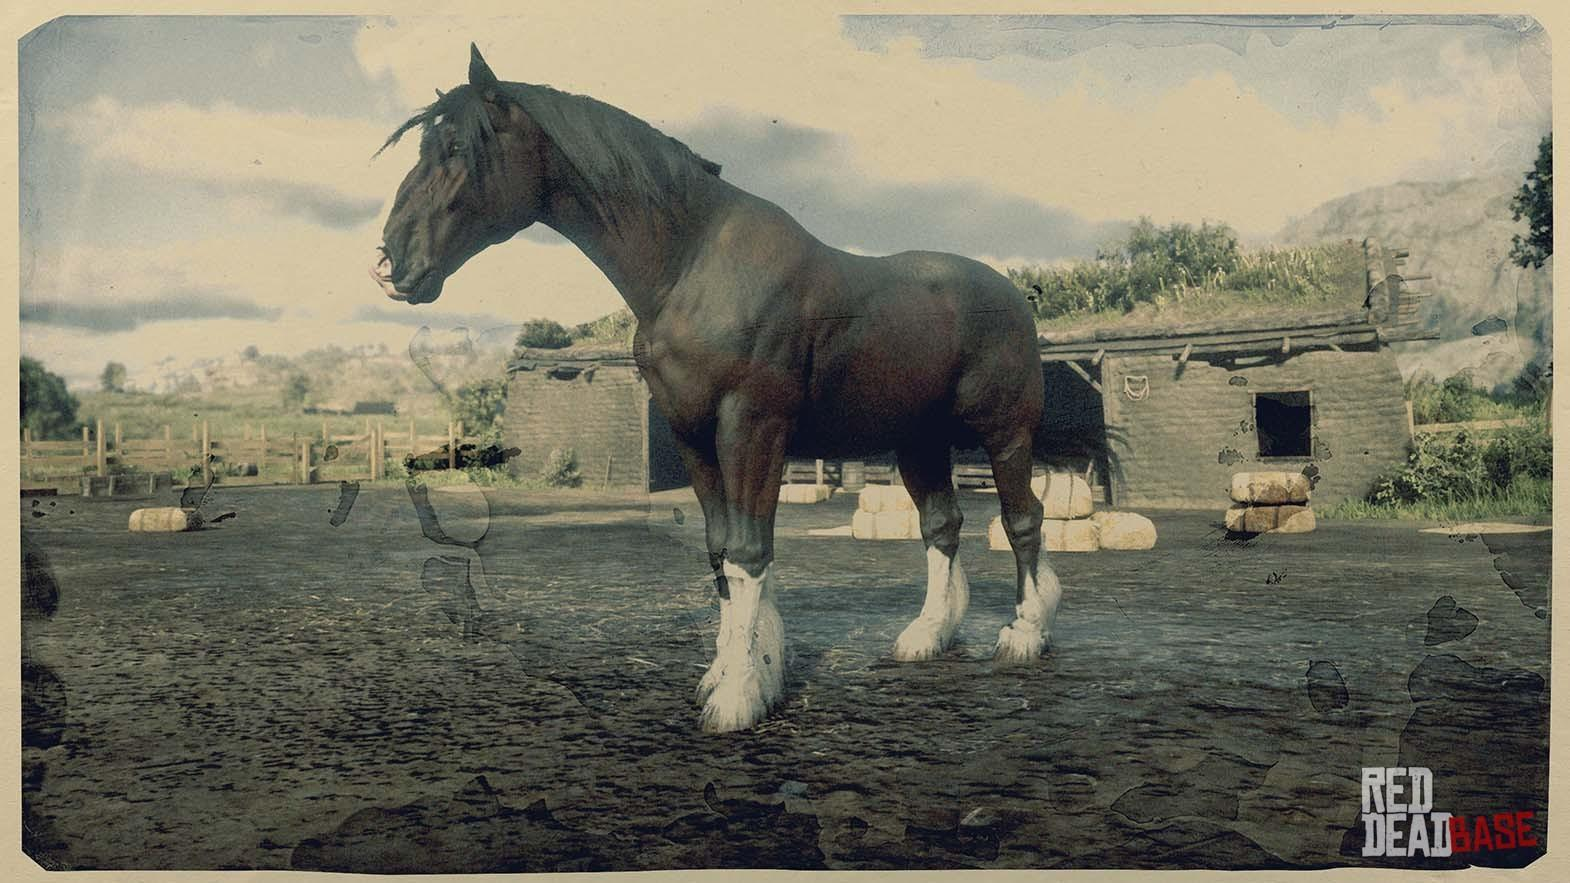 Shire Horse Red Dead Redemption 2 Horse Breeds Guide Red Dead Redemption 2 Animals Species Wildlife Database Red Dead Redemption 2